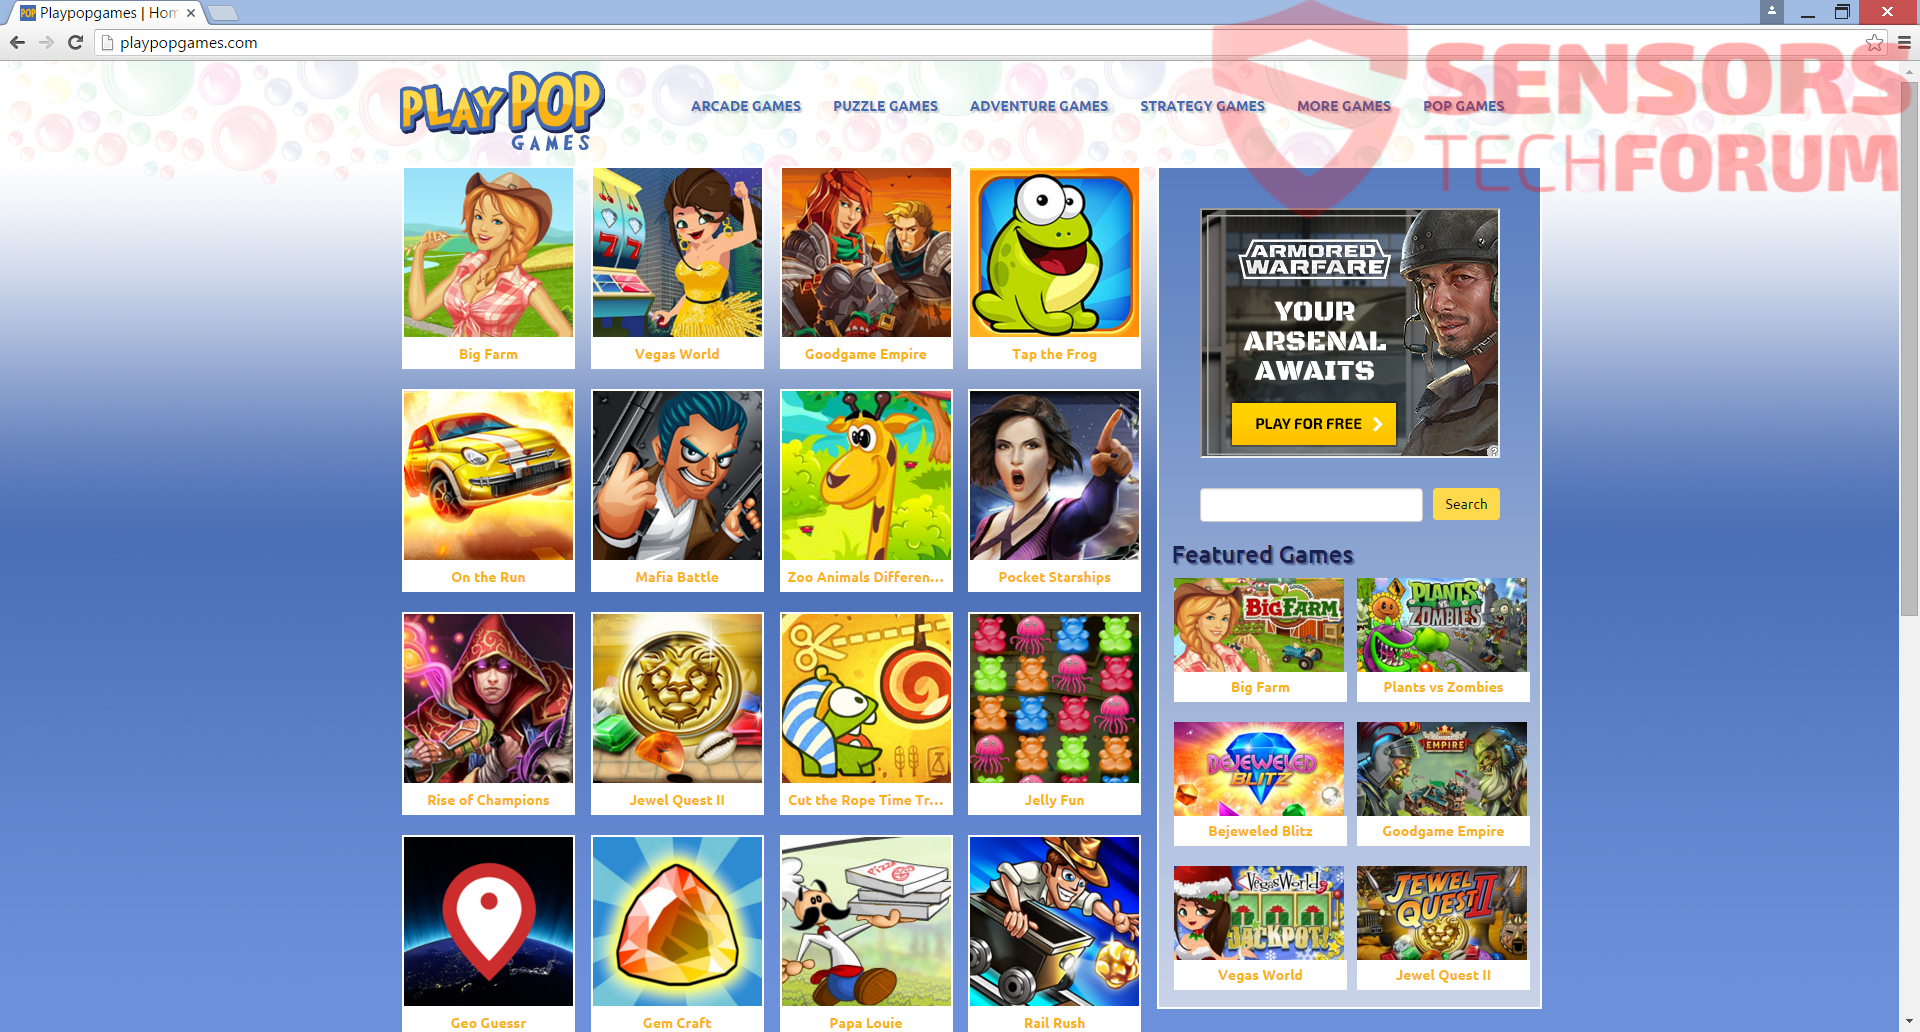 STF-playpopgames-com-play-pop-games-ads-advertisements-main-site